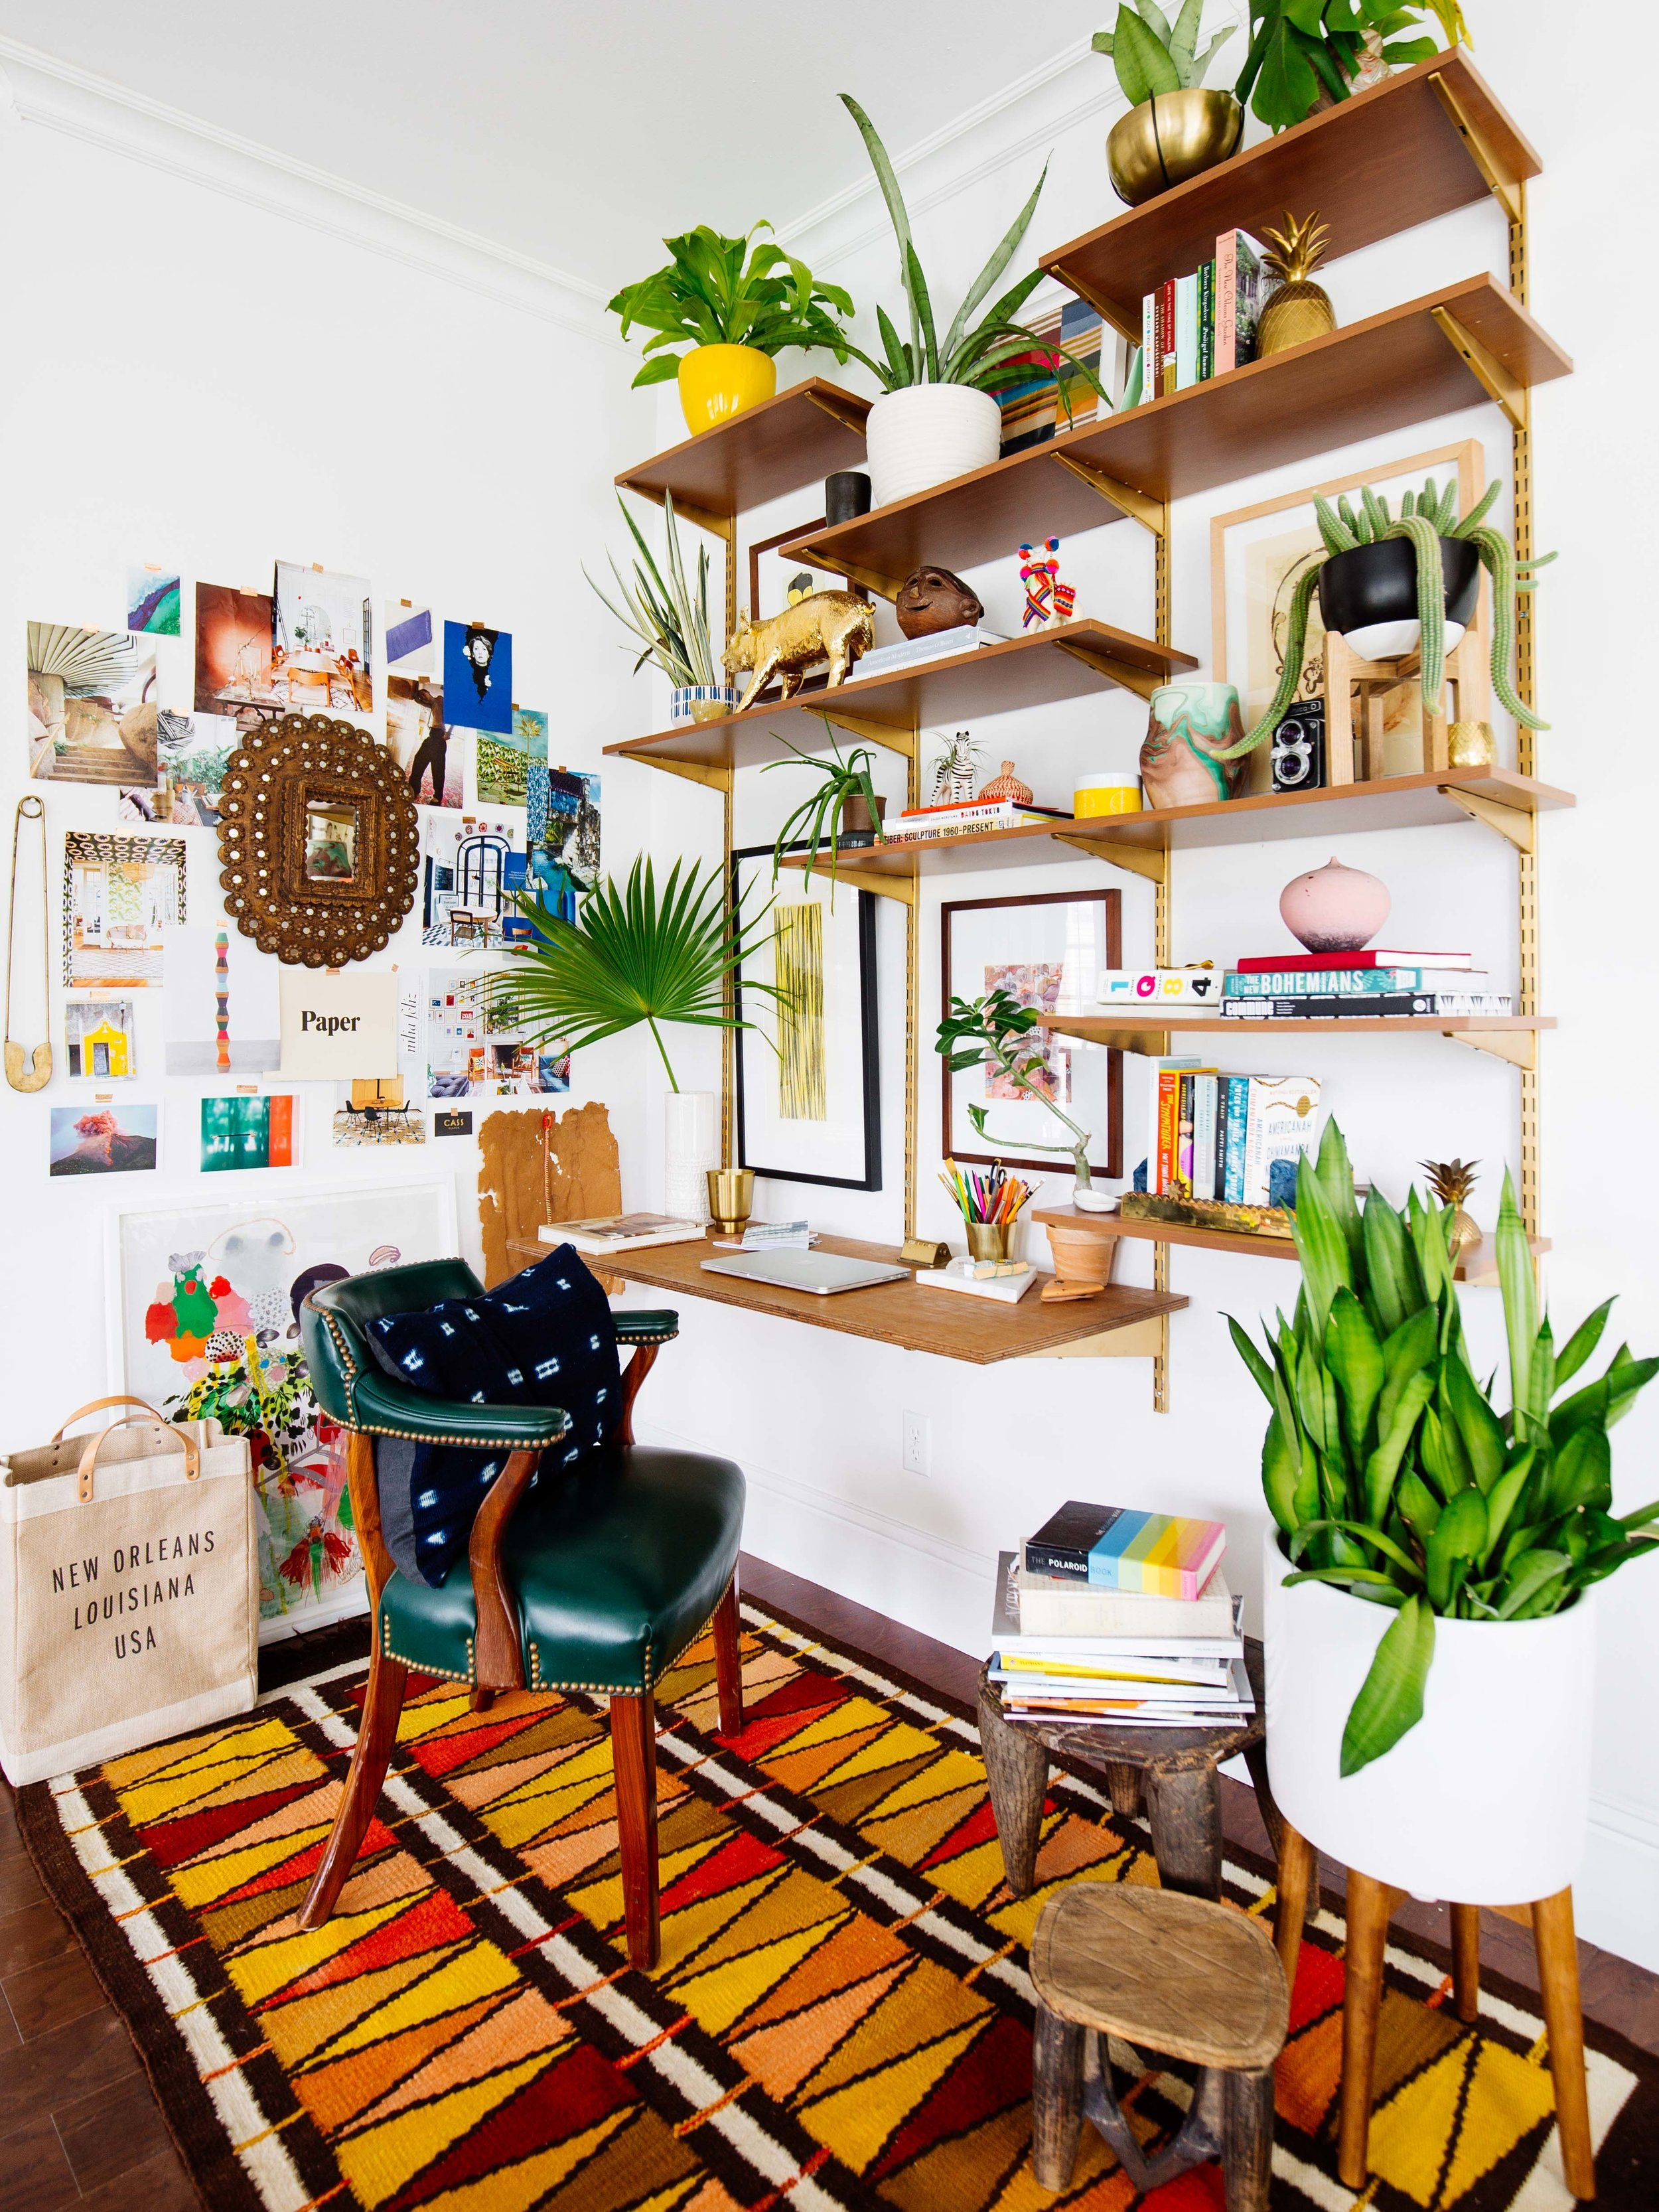 15 small house interior design ideas how to decorate a small space rh housebeautiful com interior designs for small spaces interior designs for small spaces